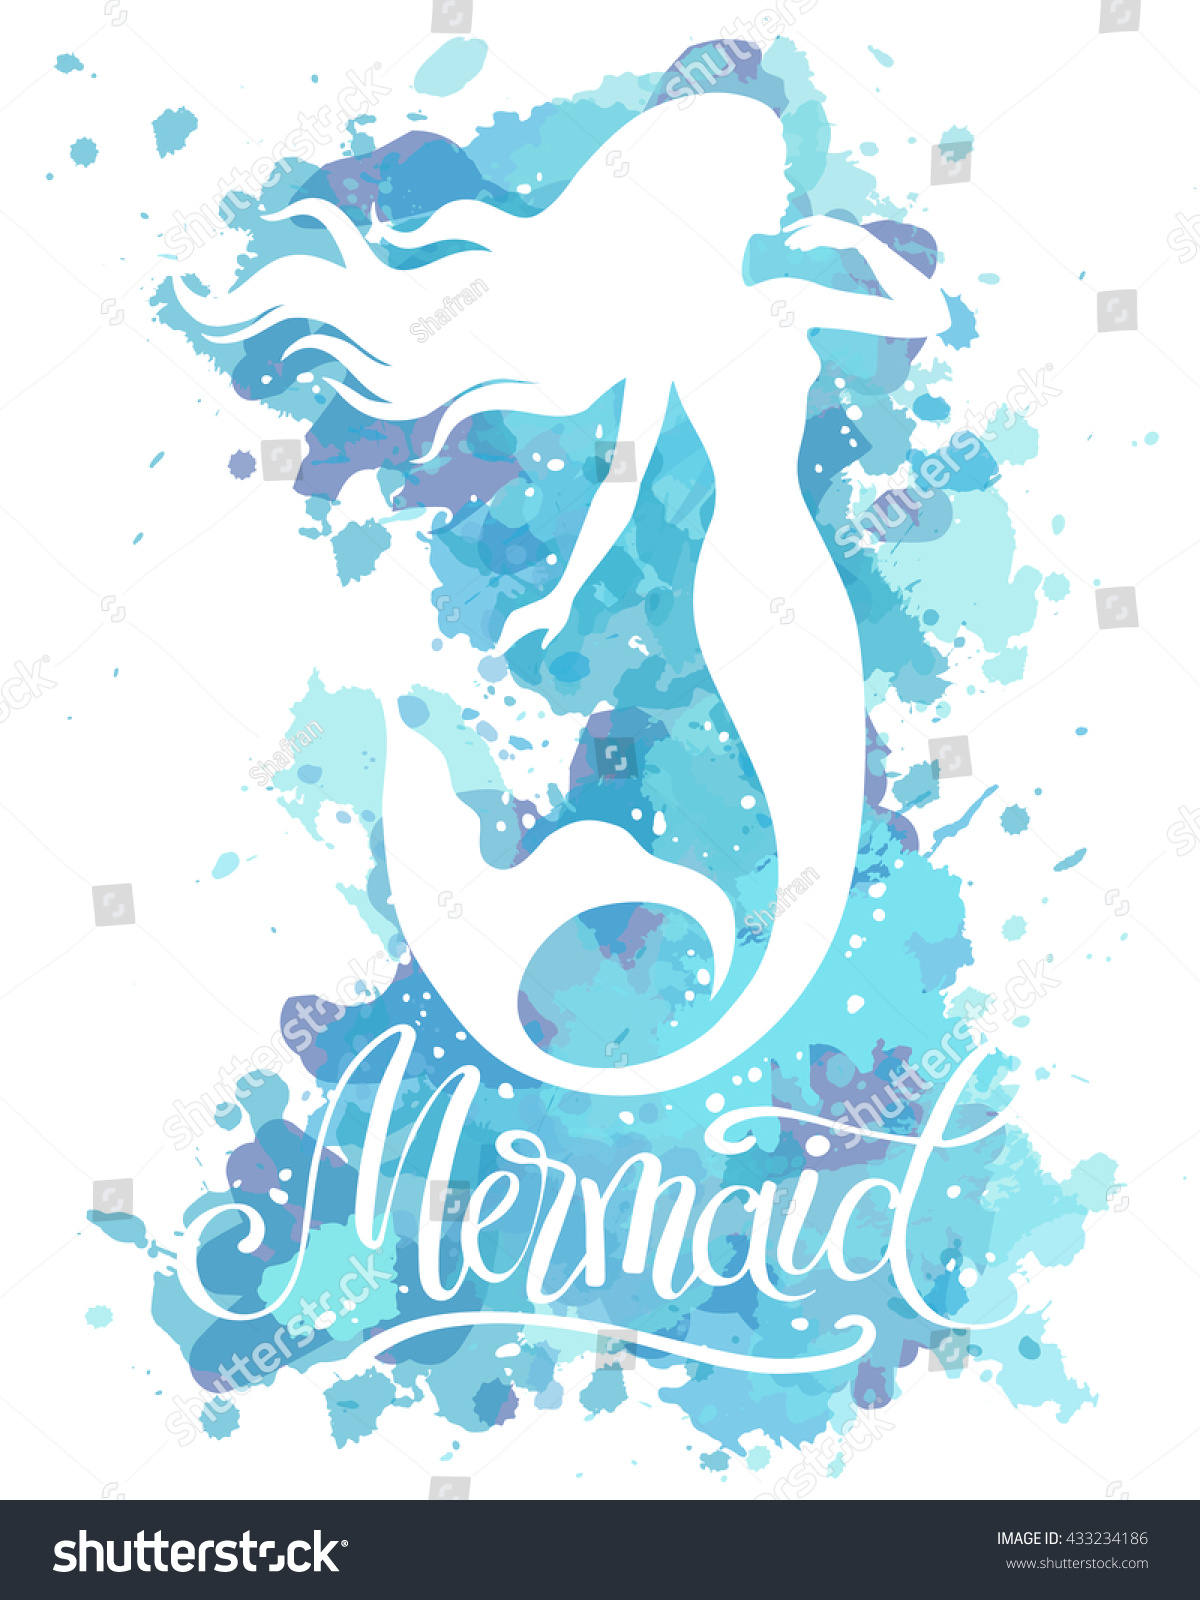 Hand painted mermaid watercolor vector silhouette stock vector - Mermaid Vector Silhouette Illustration On Watercolor Background